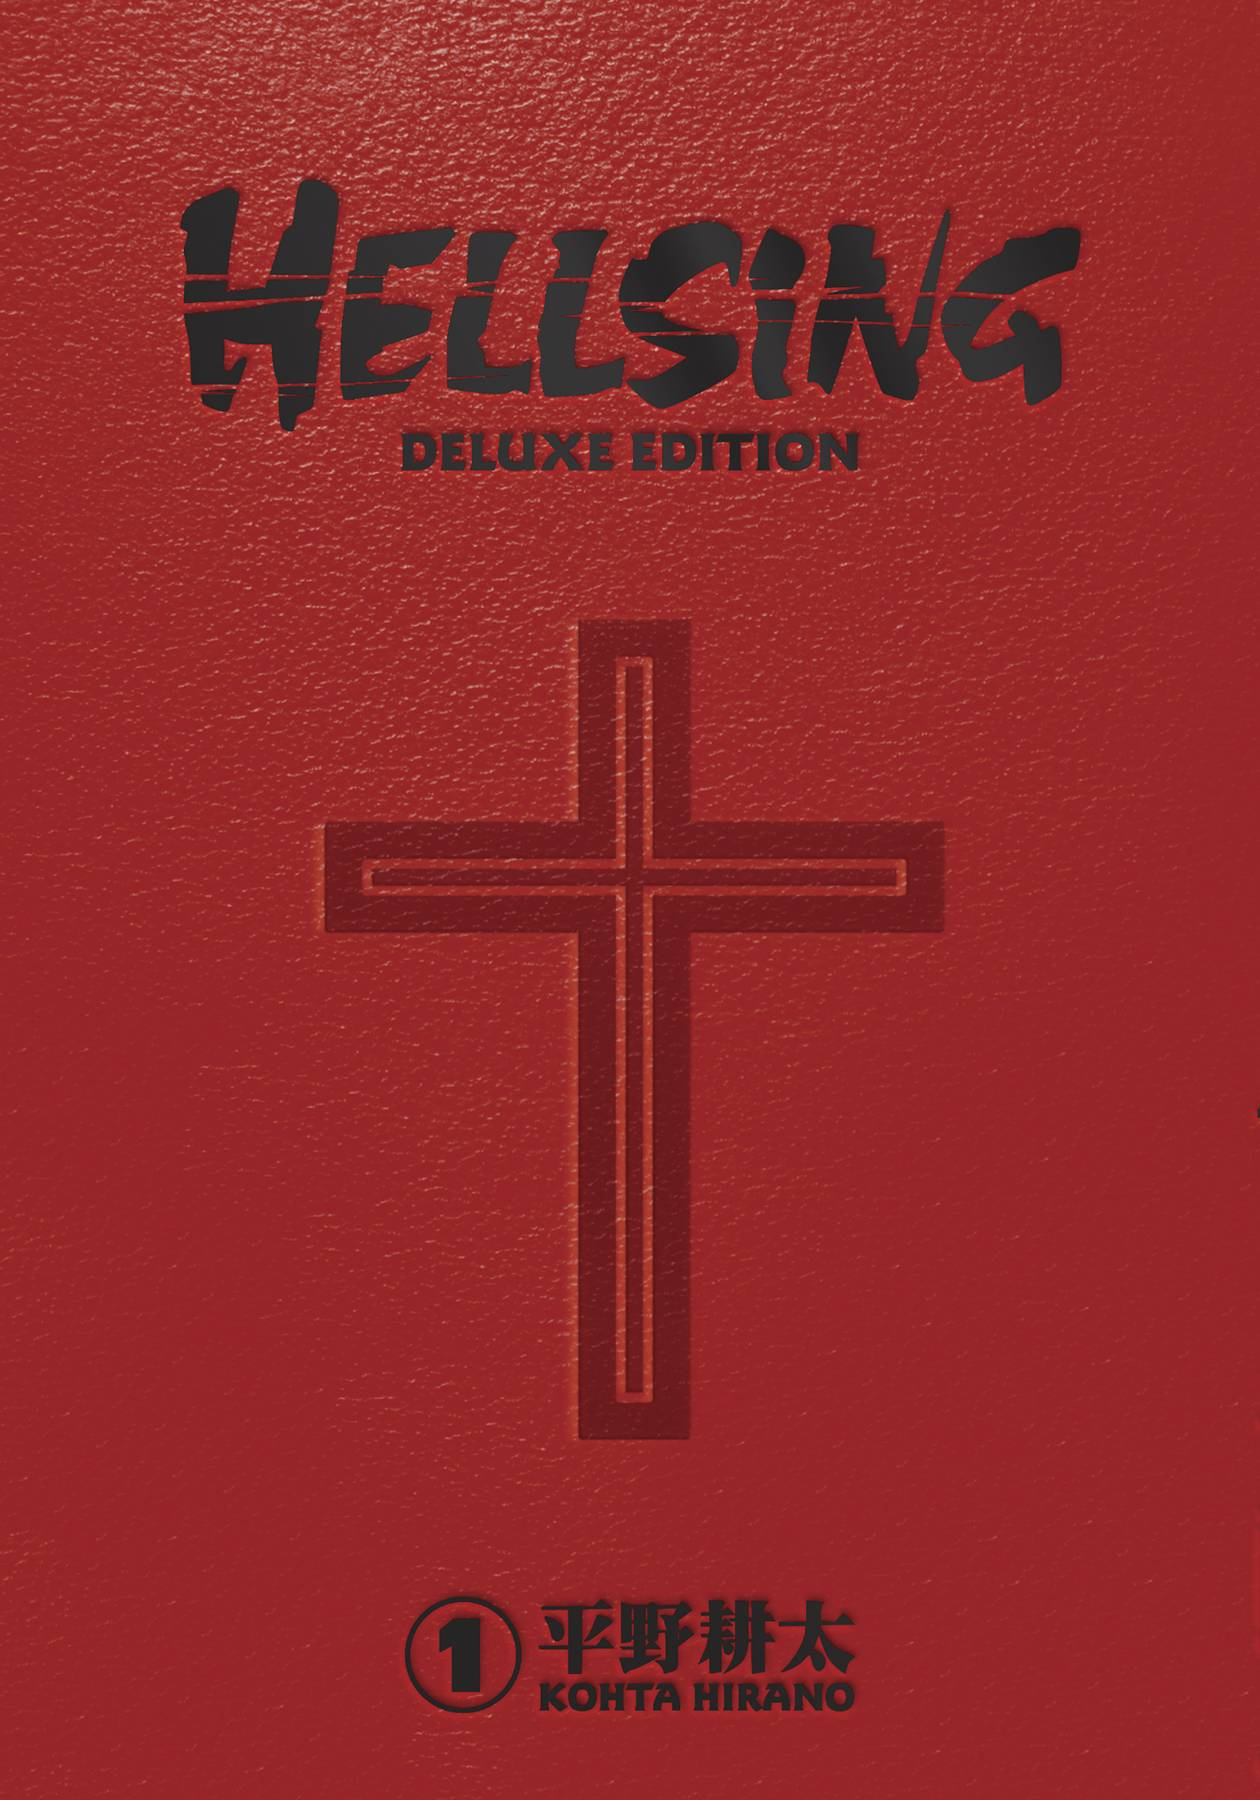 Hellsing Deluxe Edition HC vol 01